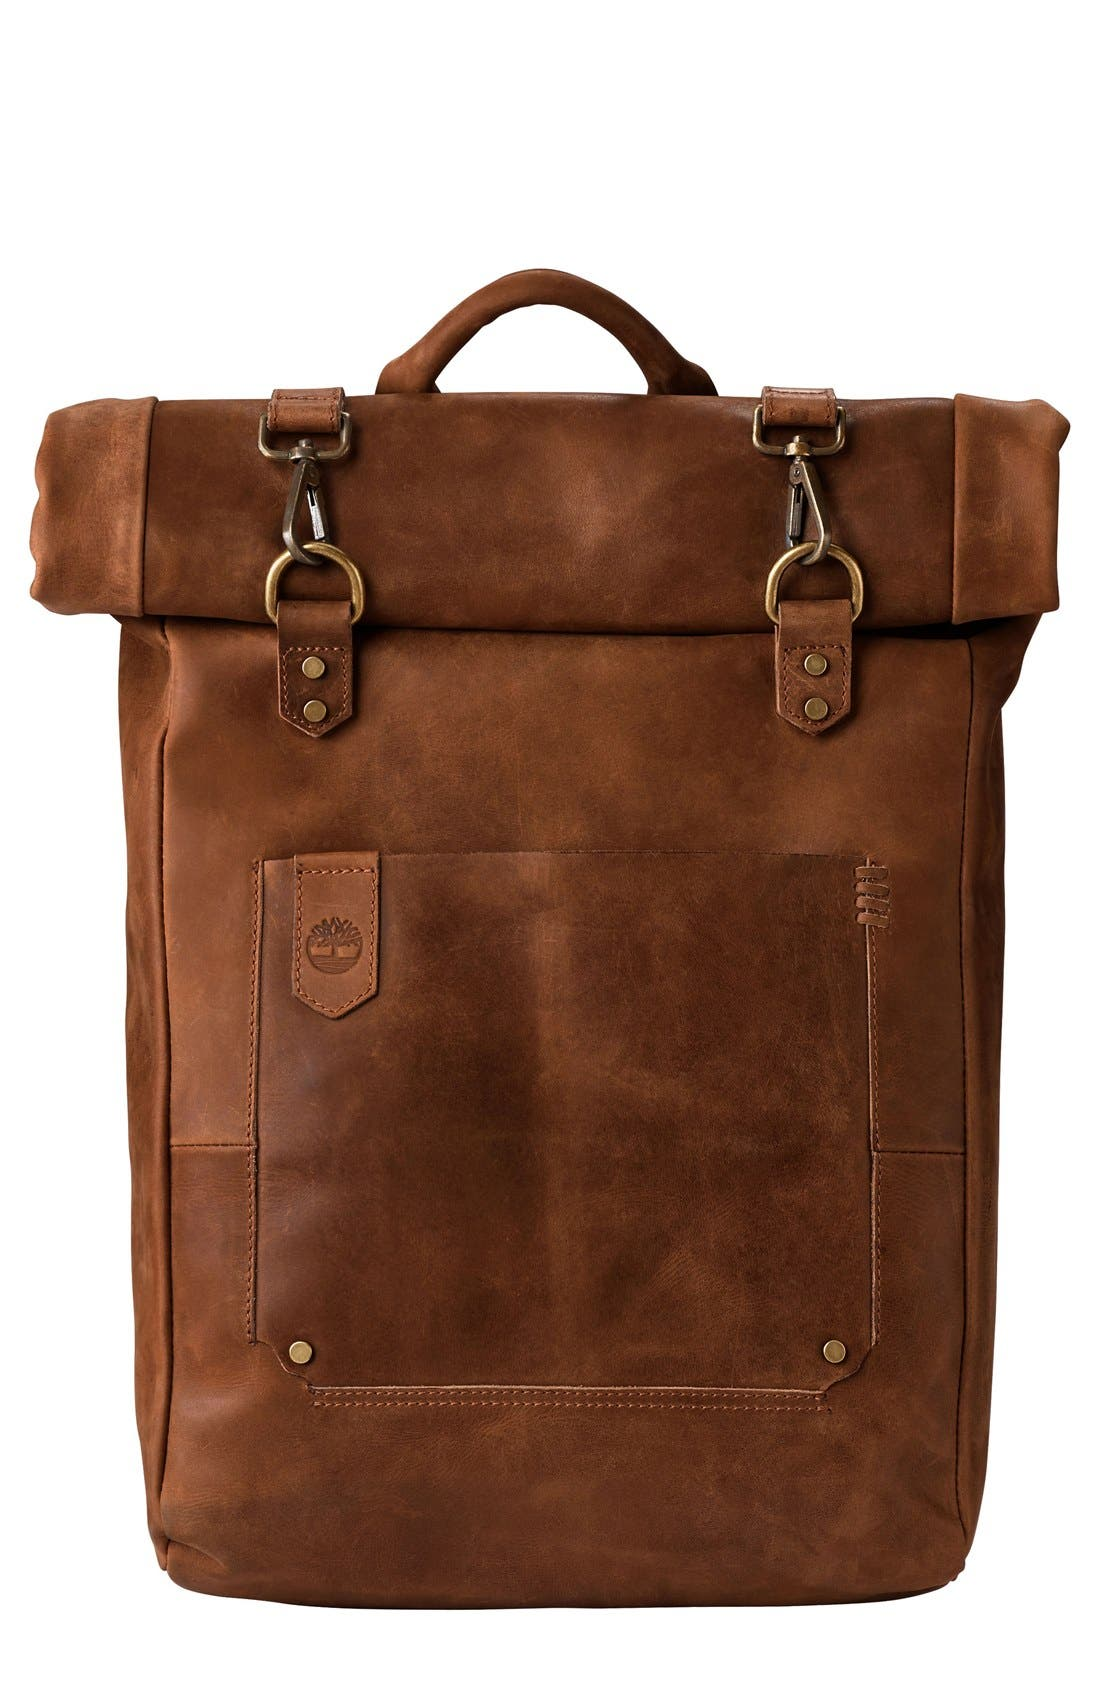 'Walnut Hill' Leather Backpack,                             Main thumbnail 1, color,                             BARN